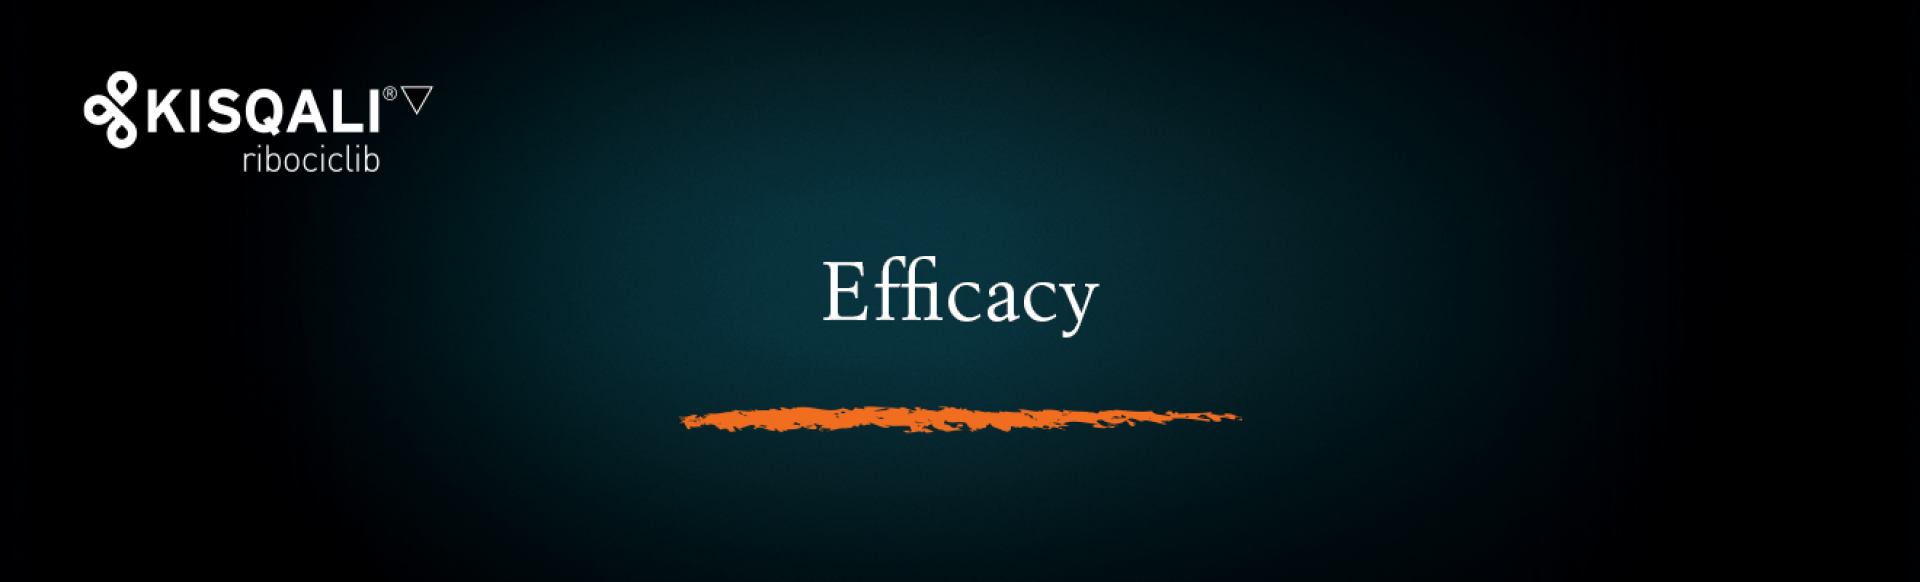 Top banner. Efficacy